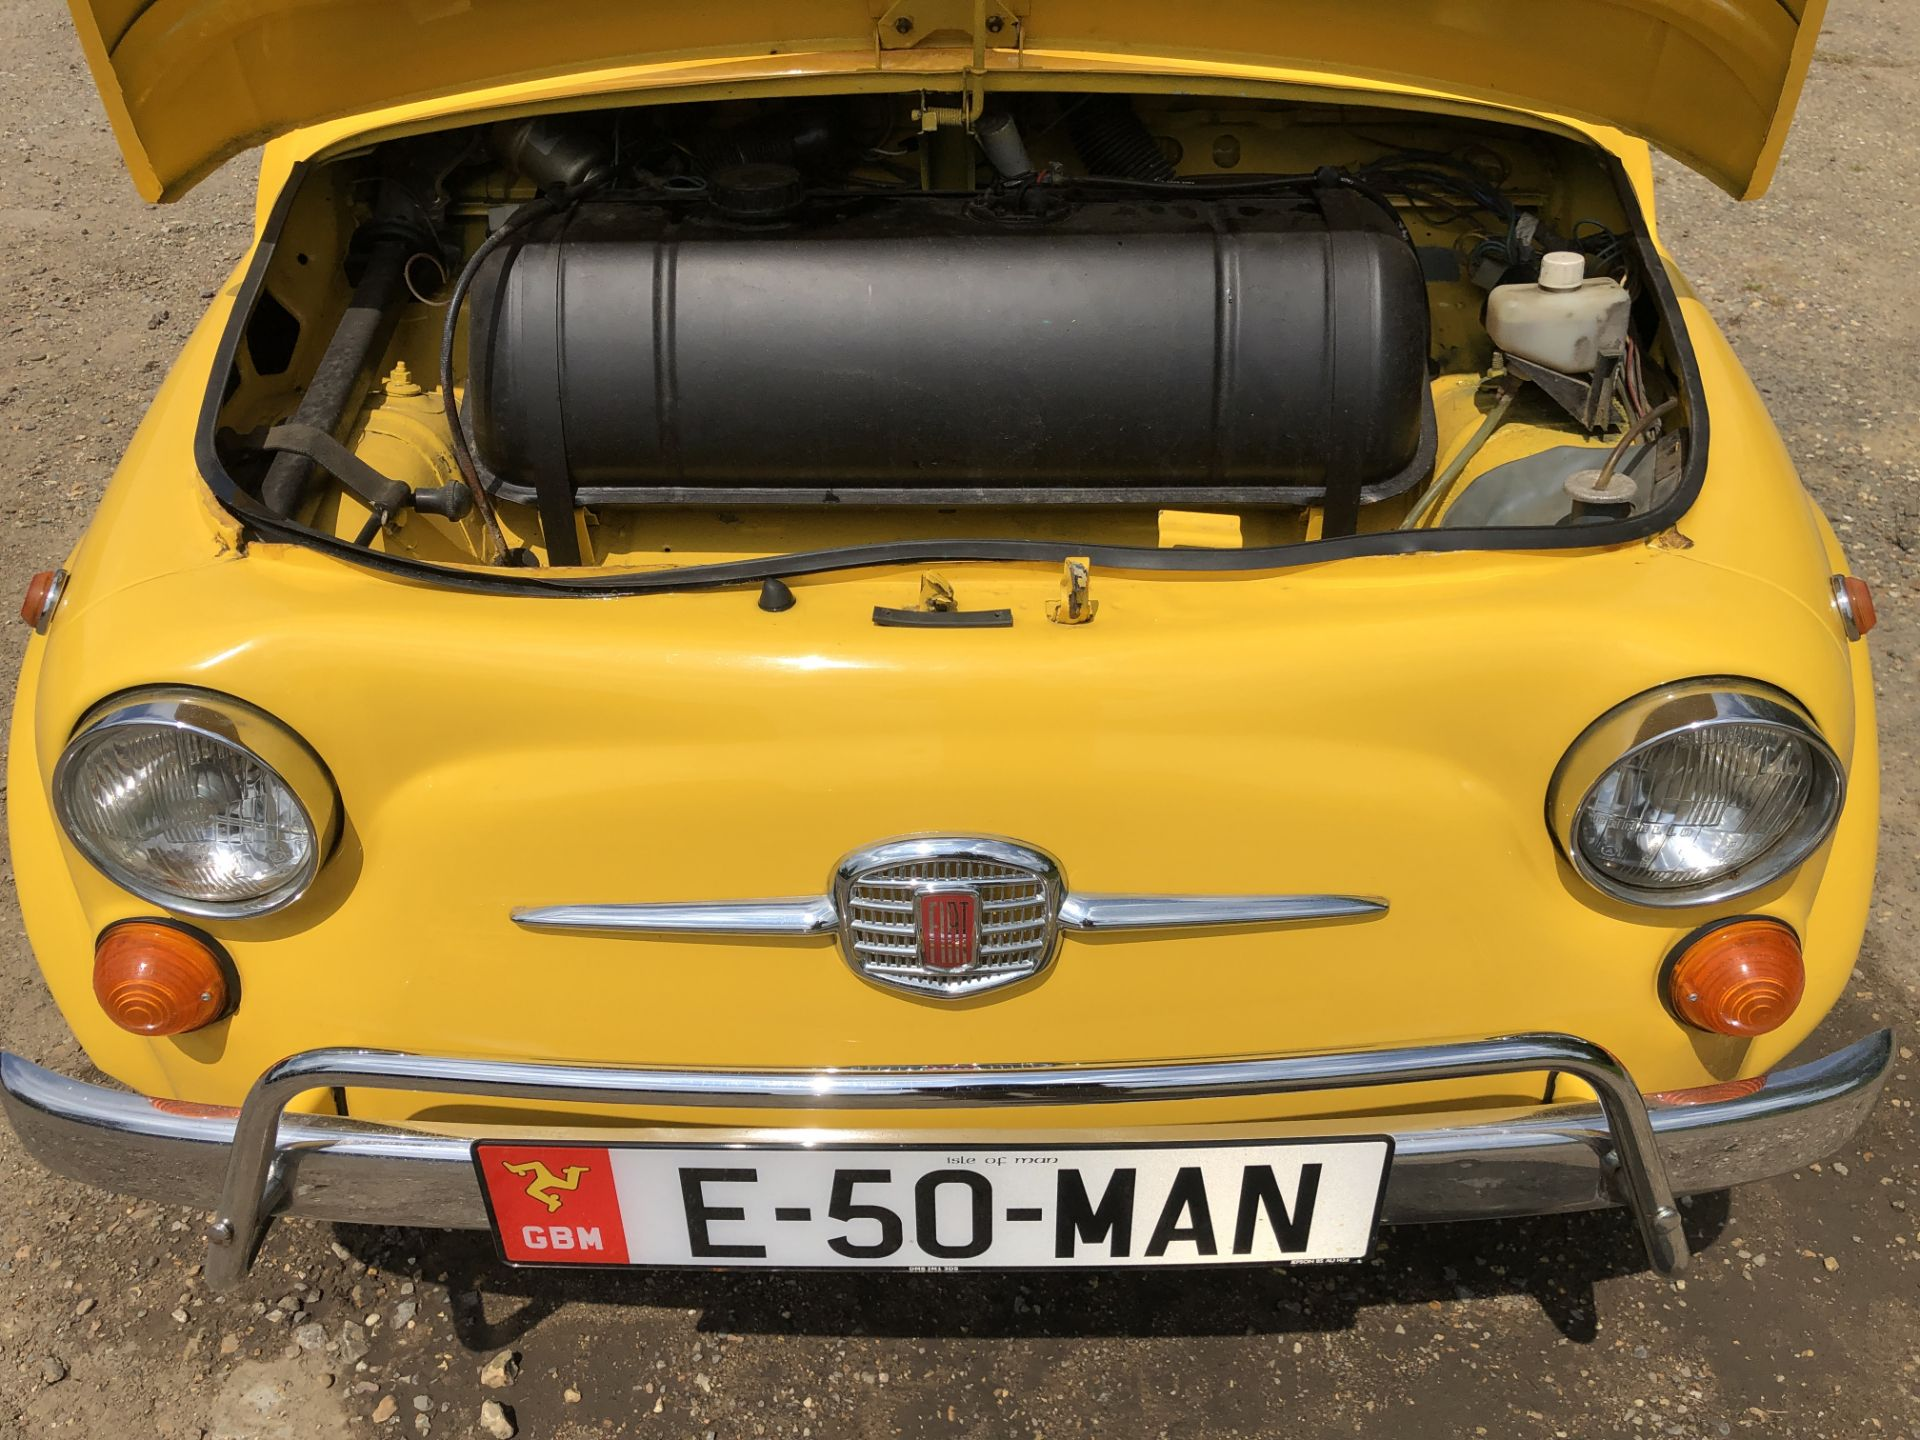 1972 Fiat 500 Saloon, Registration E-50-Man (IOM, Formally Registered as TGF 249L), First Registered - Image 33 of 34